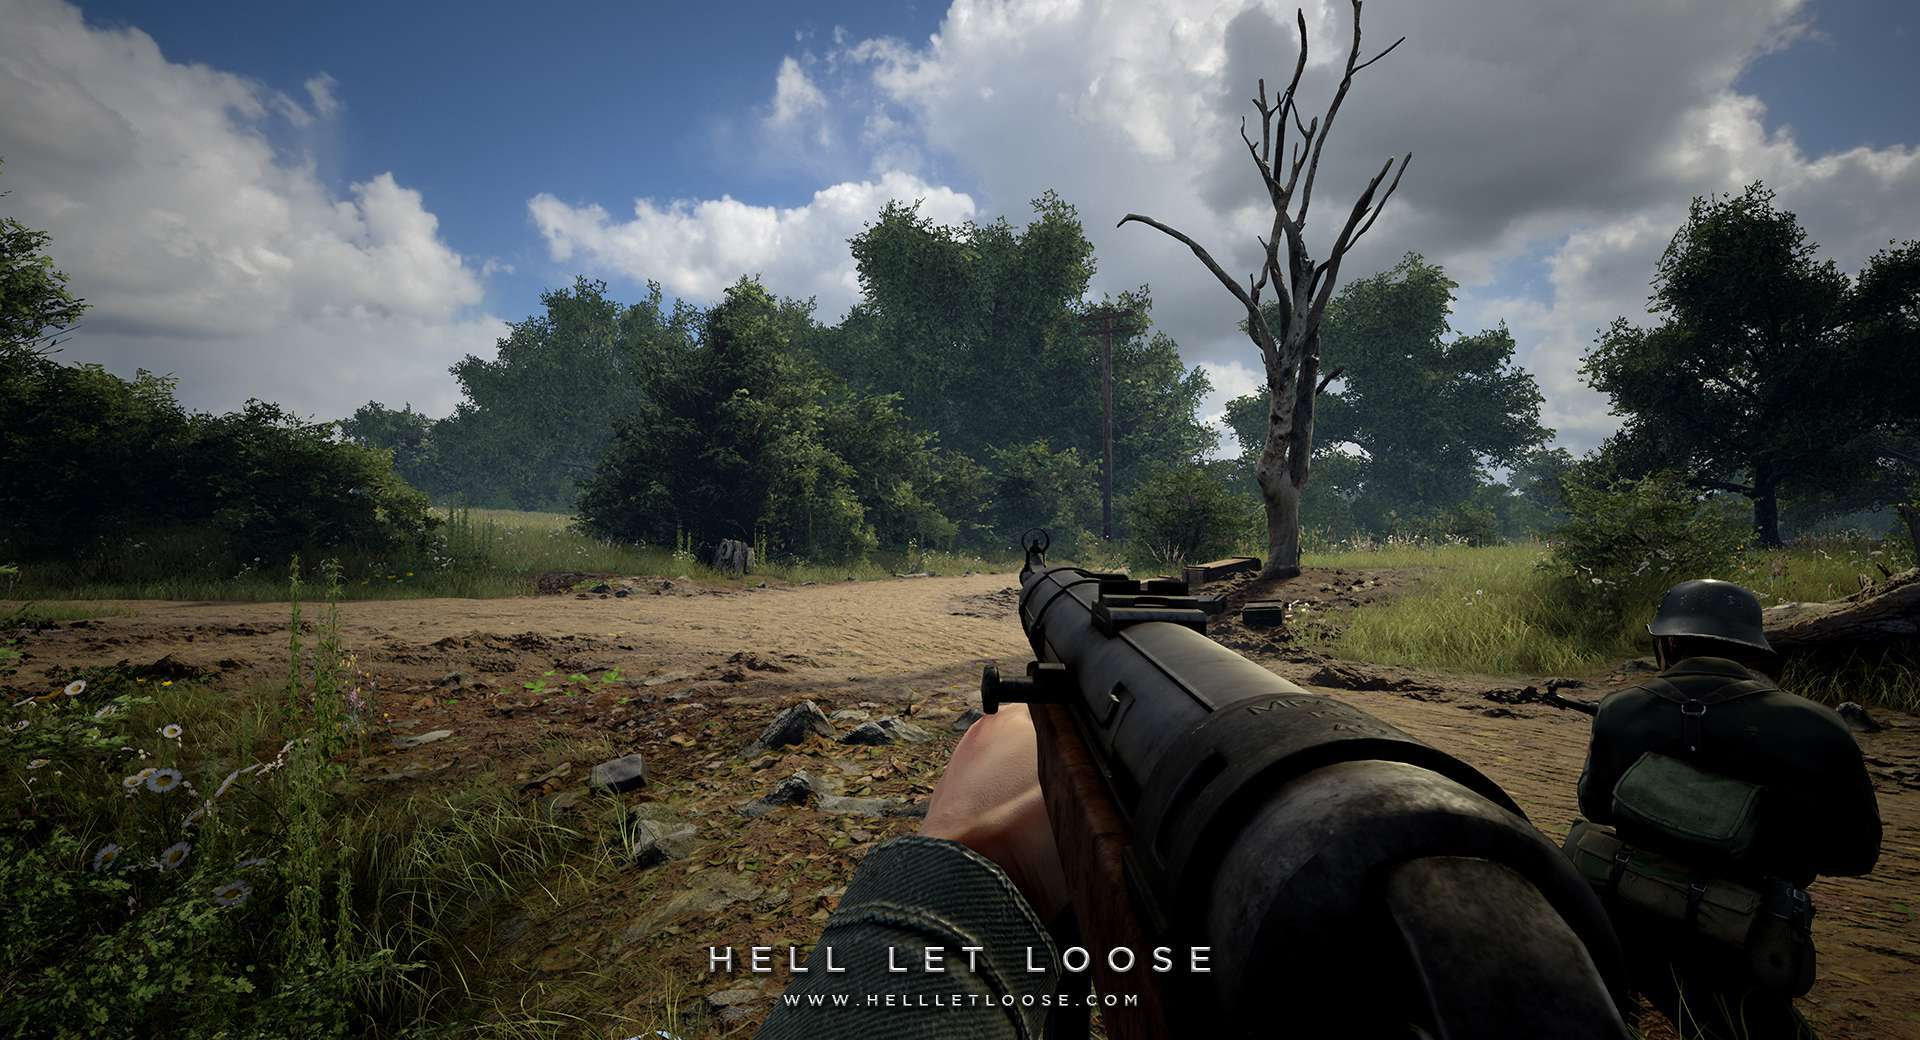 Hell Let Loose #1